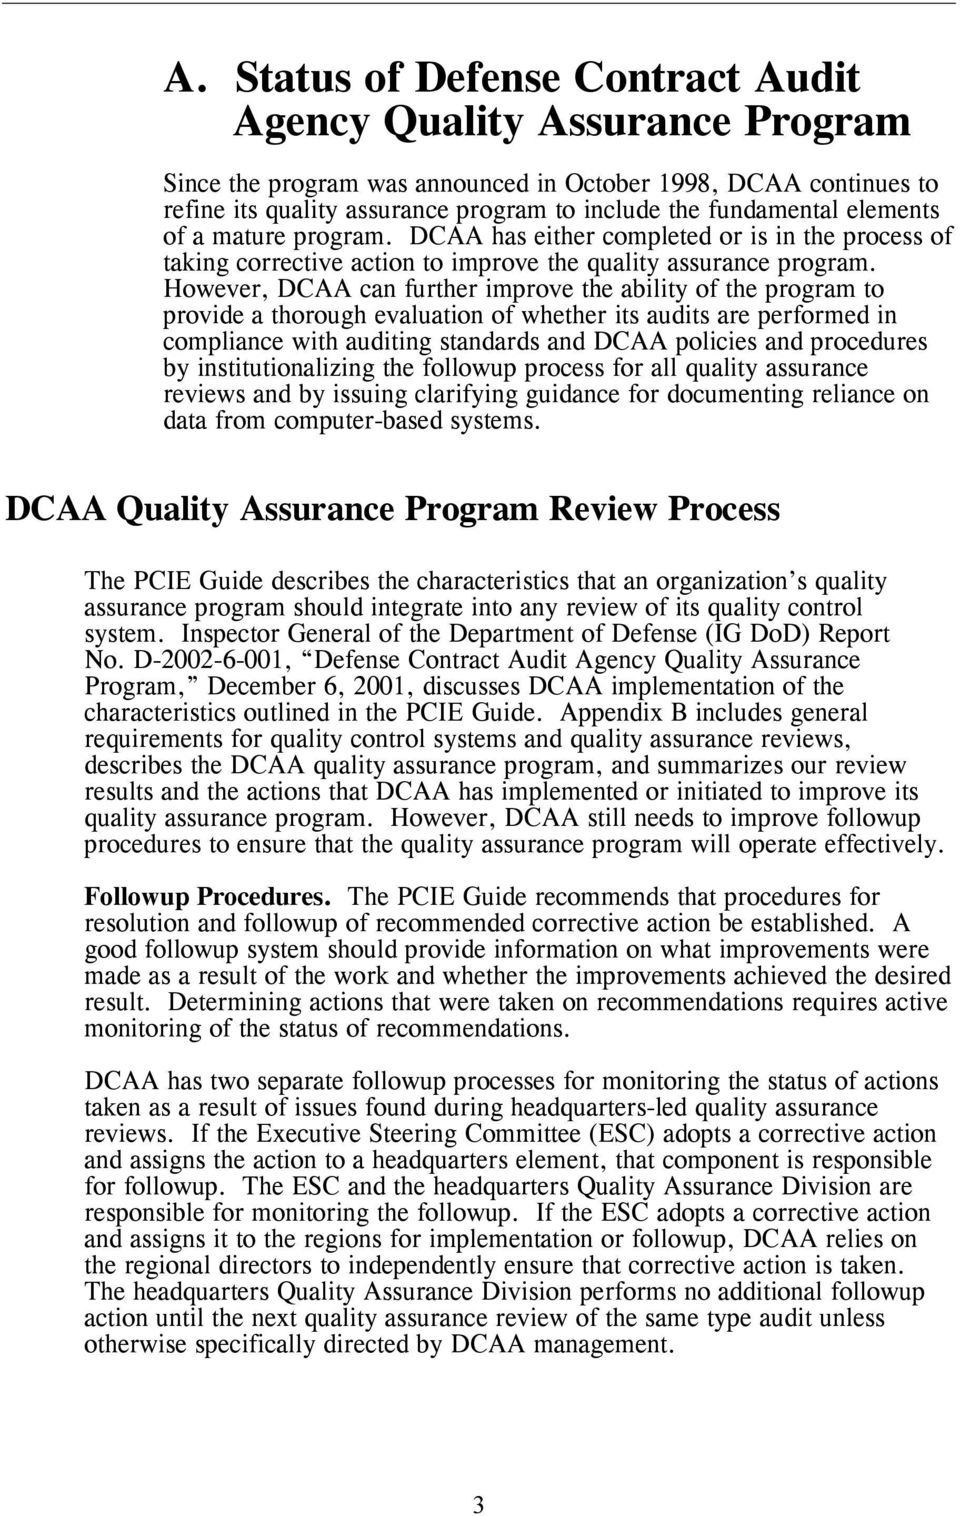 However, DCAA can further improve the ability of the program to provide a thorough evaluation of whether its audits are performed in compliance with auditing standards and DCAA policies and